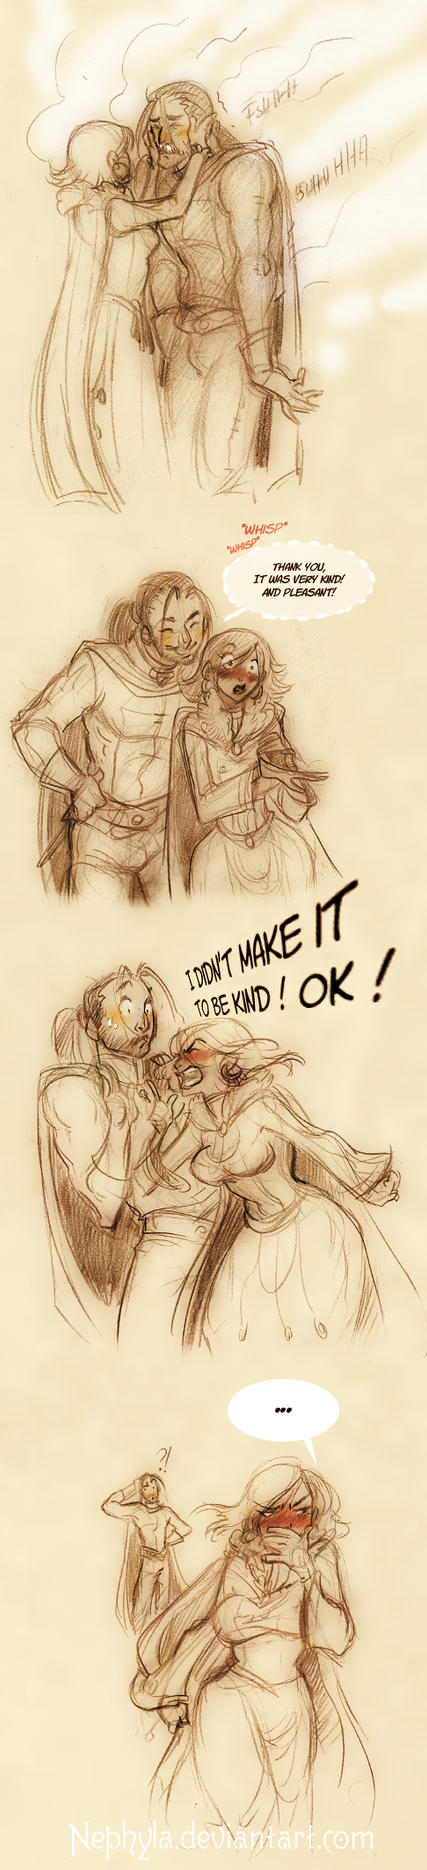 +WoW+ I'm not kind ! by Nephyla